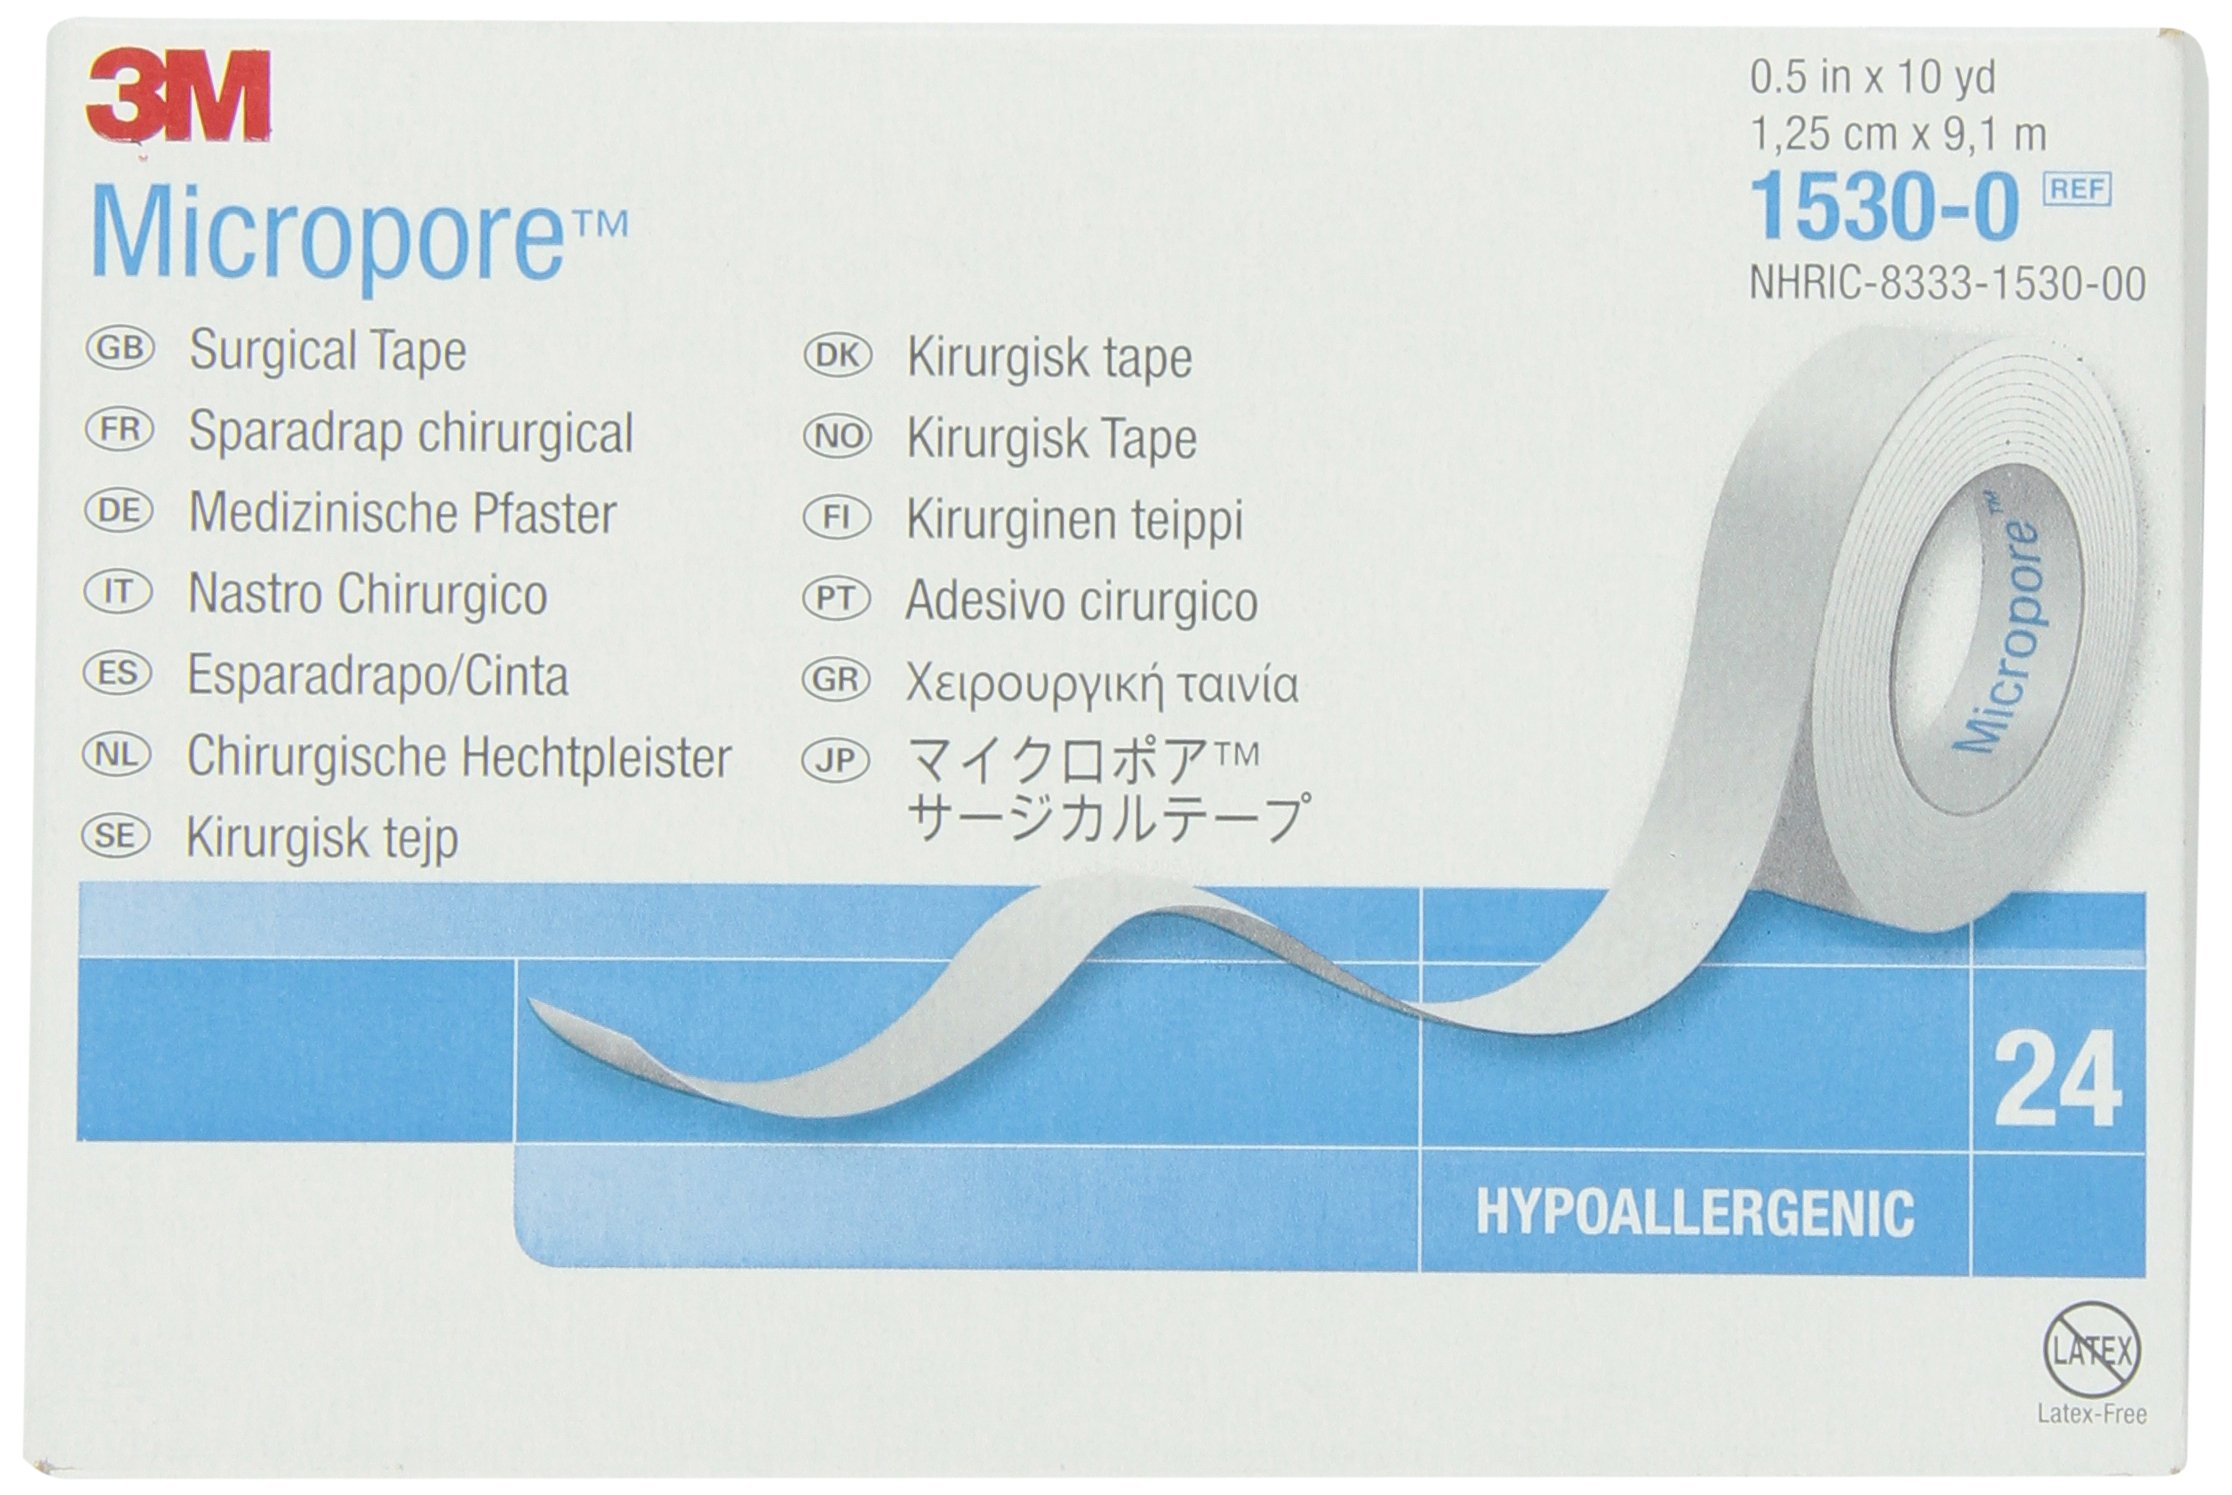 3M Micropore Tape 1530-0 (Box of 24 rolls)